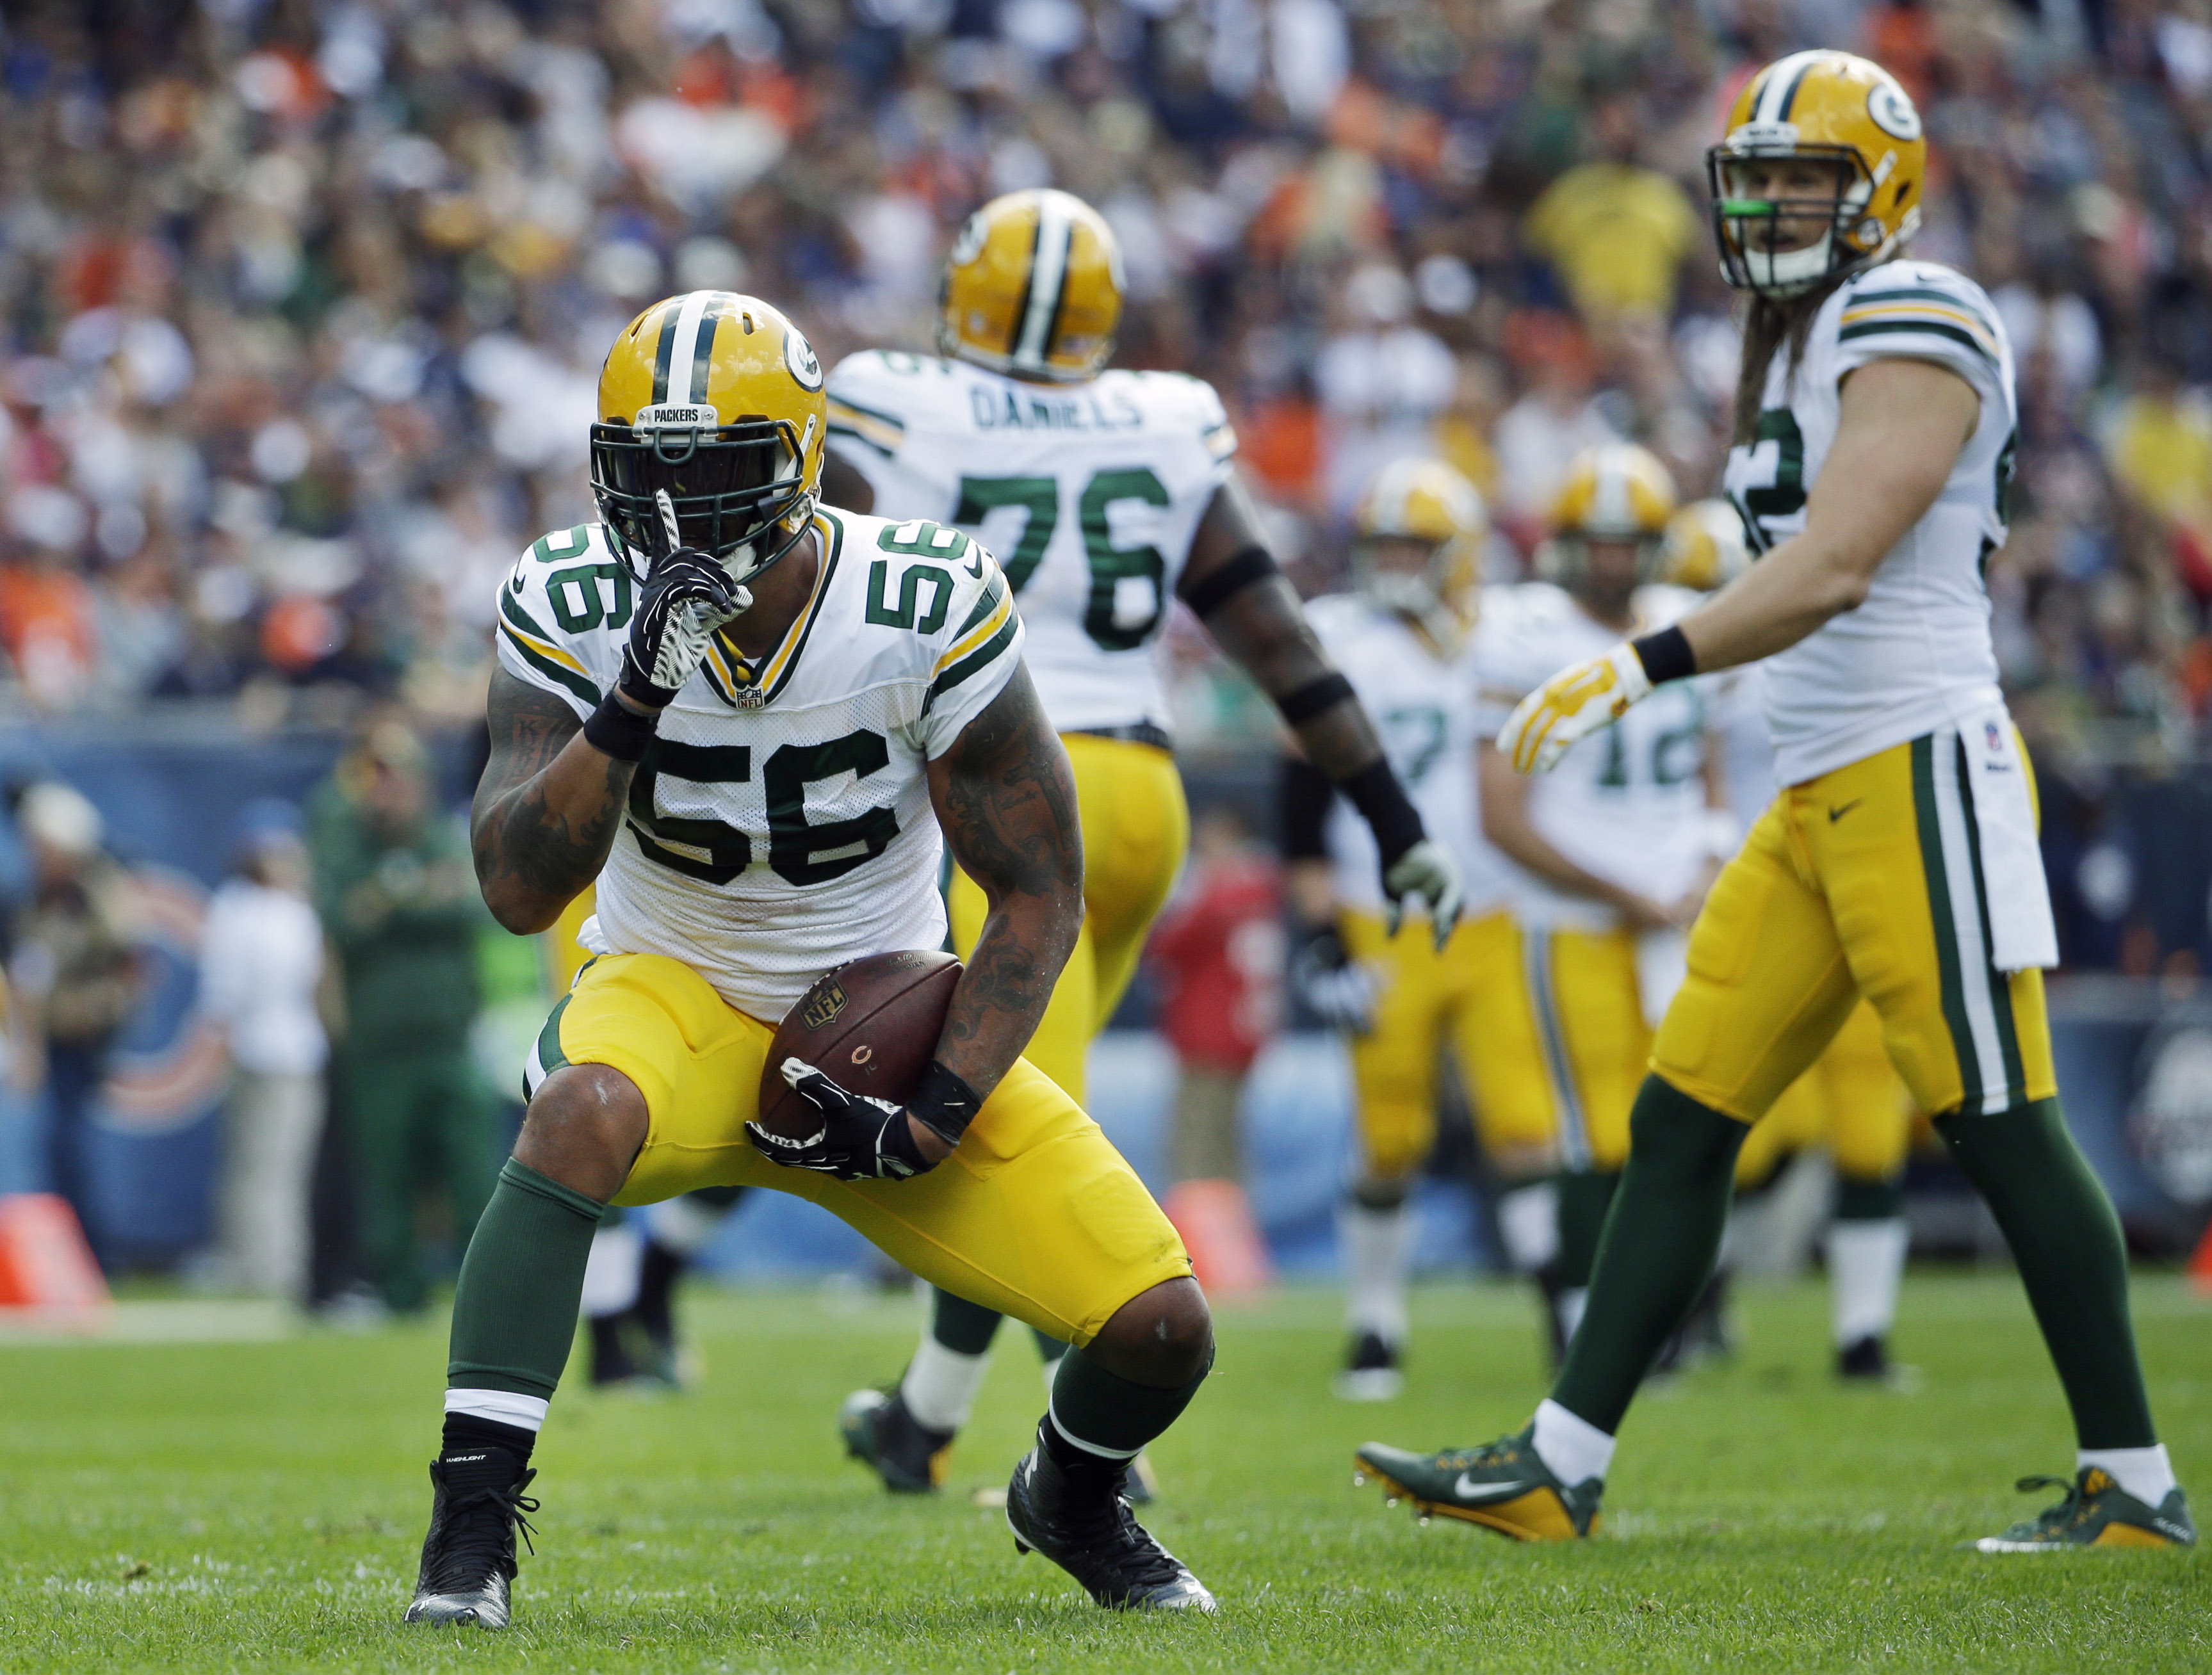 FILE - In this Sept. 13, 2015, file photo, Green Bay Packers outside linebacker Julius Peppers (56) reacts after sacking Chicago Bears quarterback Jay Cutler during the first half an NFL football game,  in Chicago. After a productive first six games, the